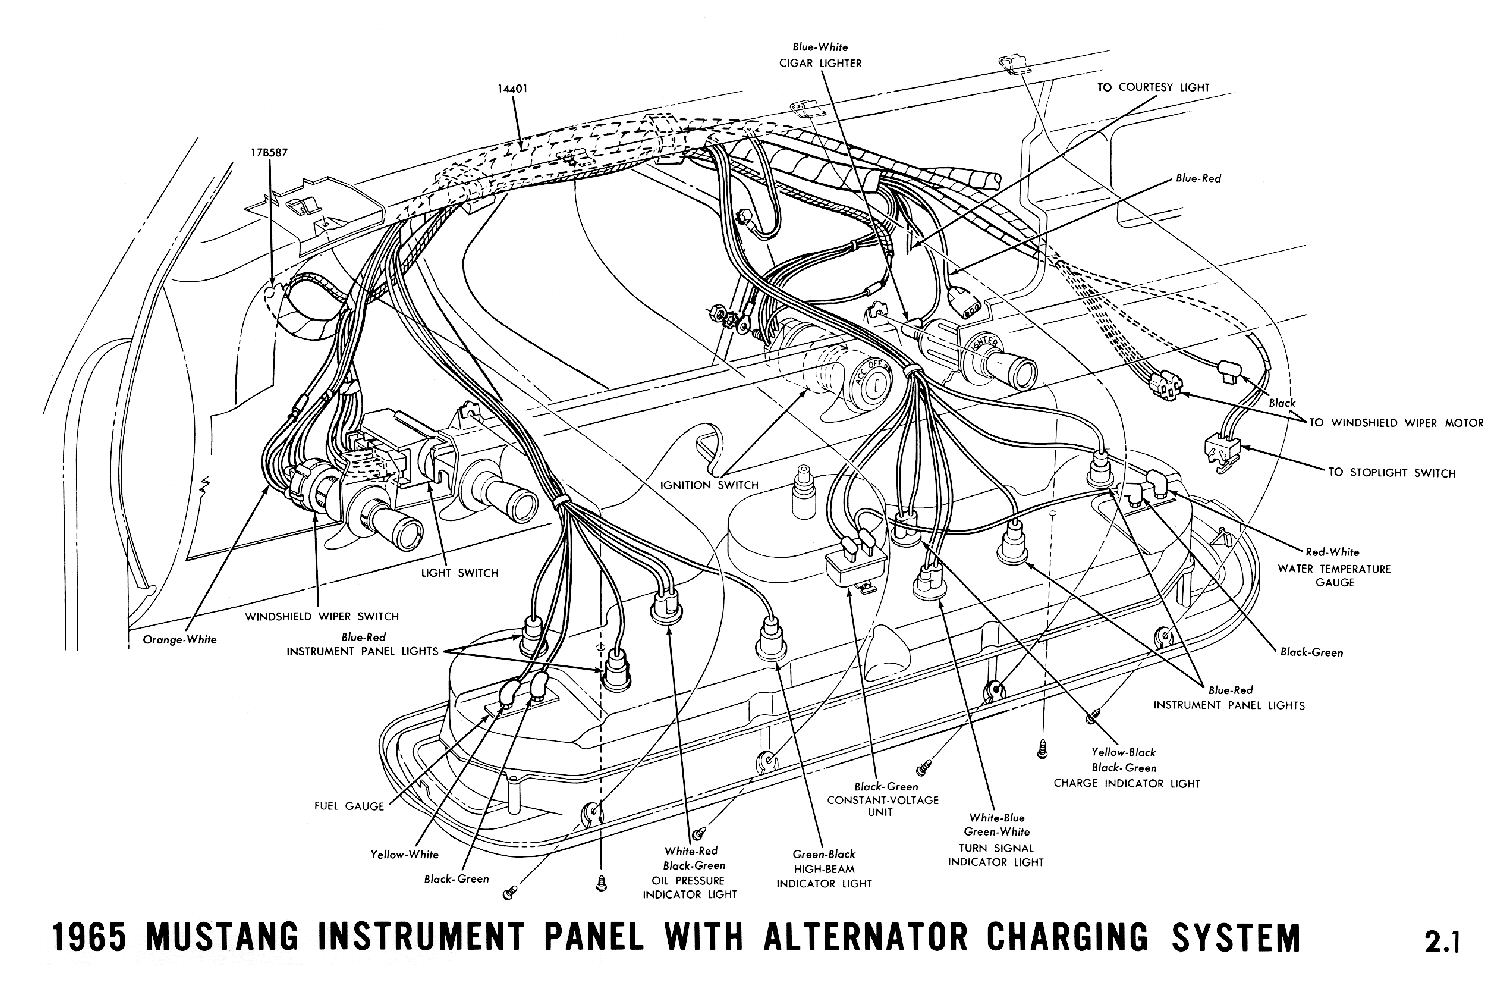 1965a 1965 mustang wiring diagrams average joe restoration 65 mustang ignition wiring diagram at mifinder.co